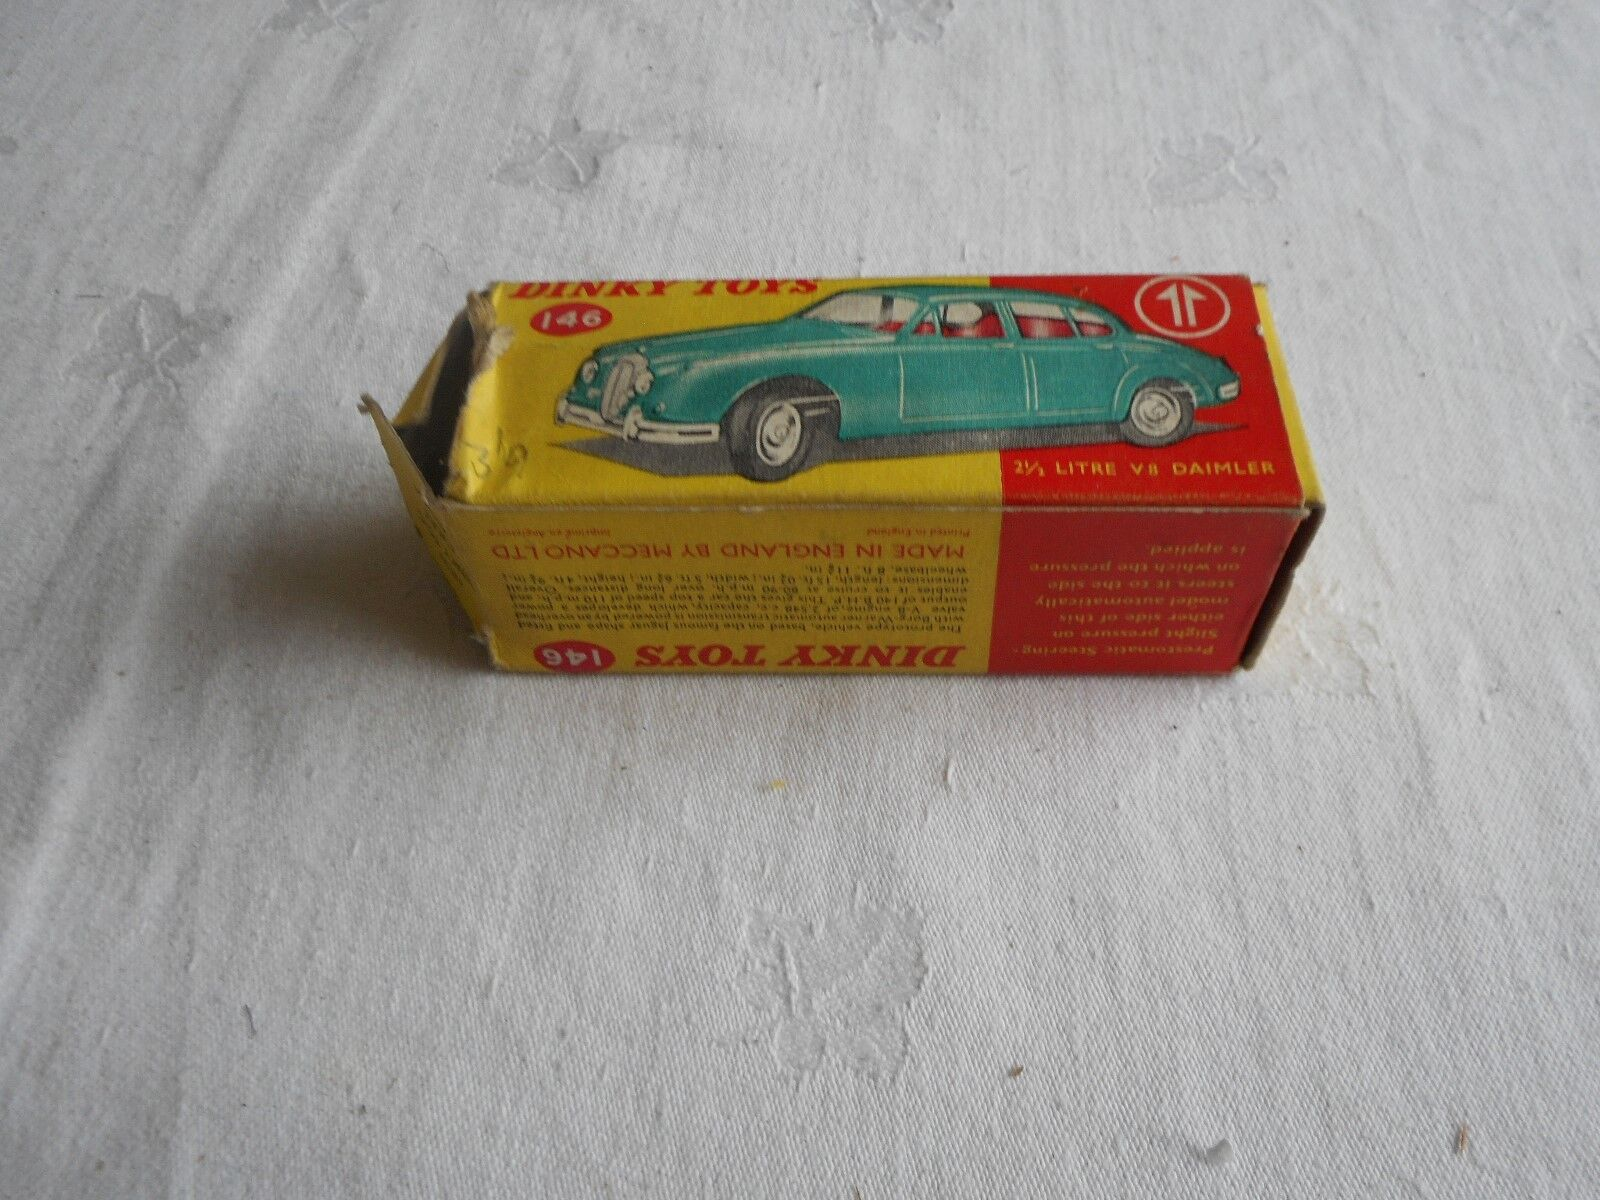 Dinky 146 2.5 Litre V8 Daimler with Police sign added to top + box